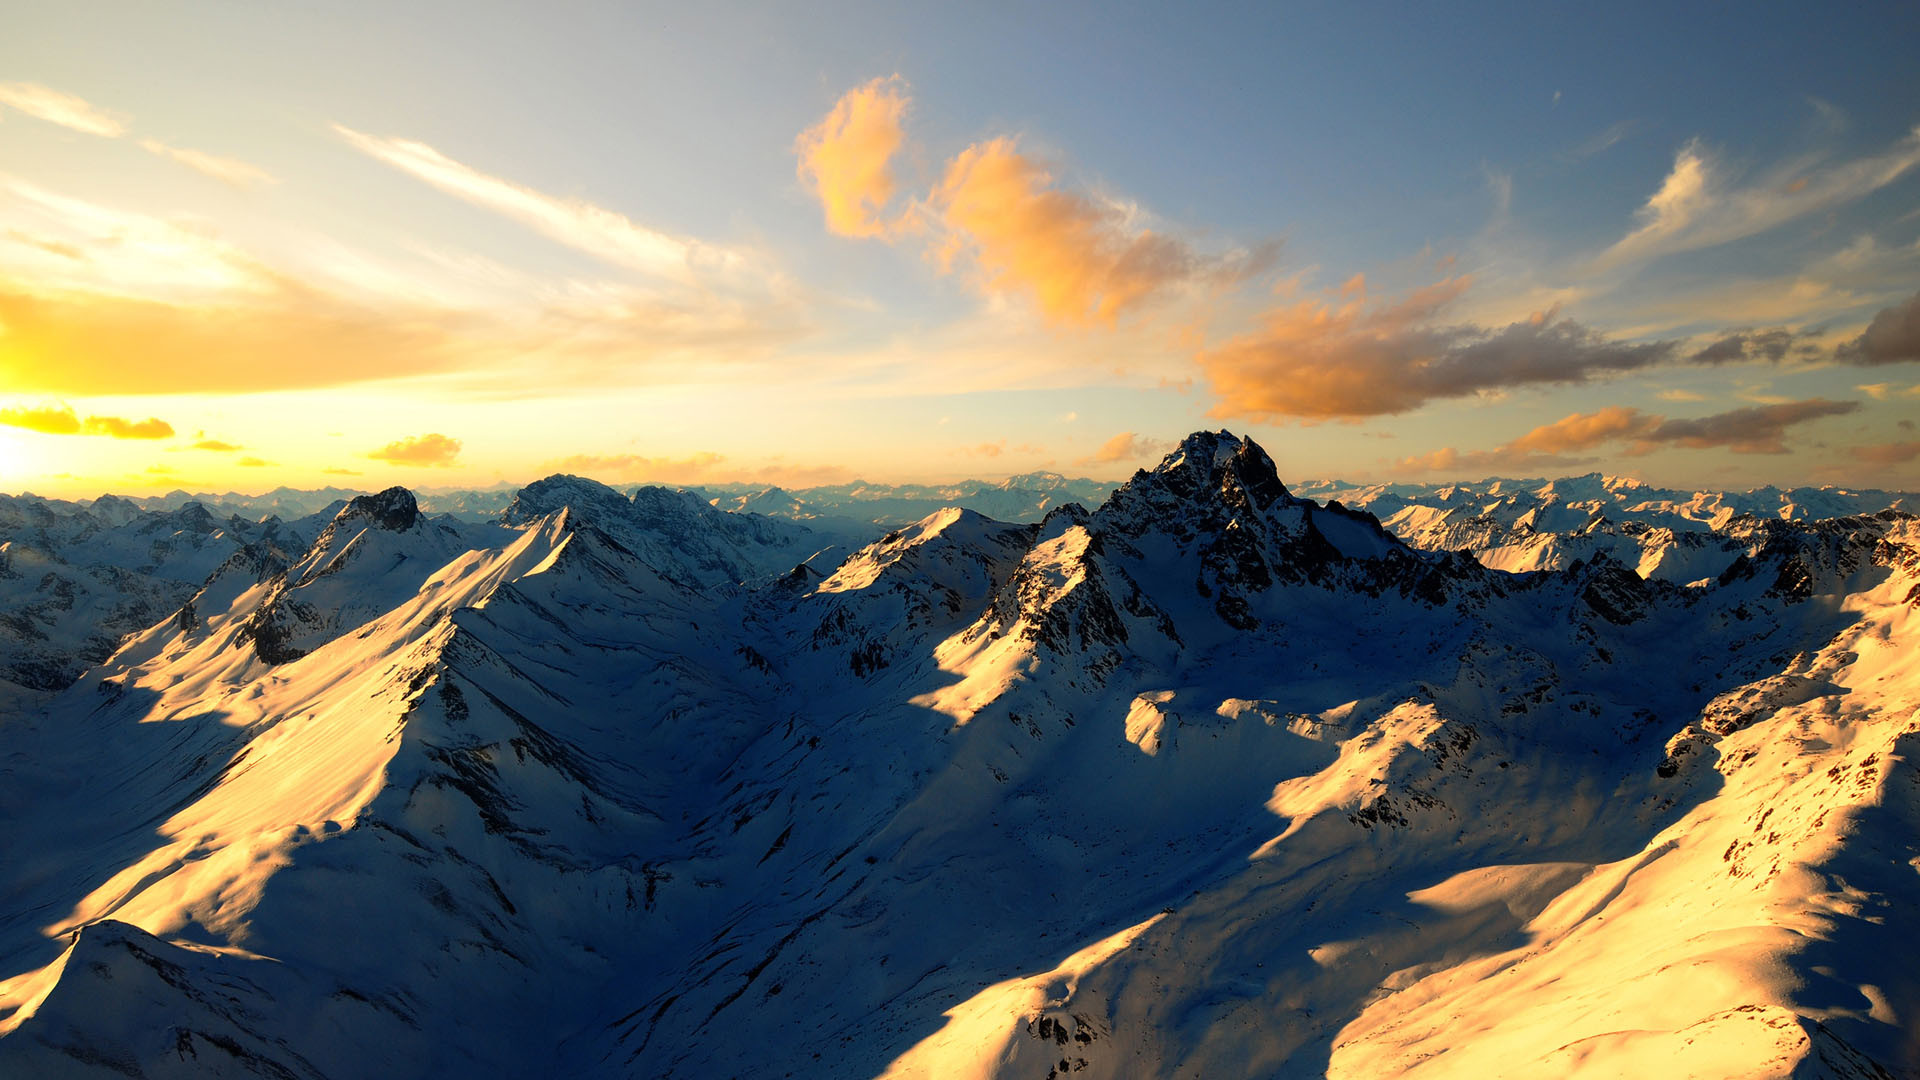 1920x1080 Free Desktop Wallpapers Backgrounds Snow Mountain Wallpapers